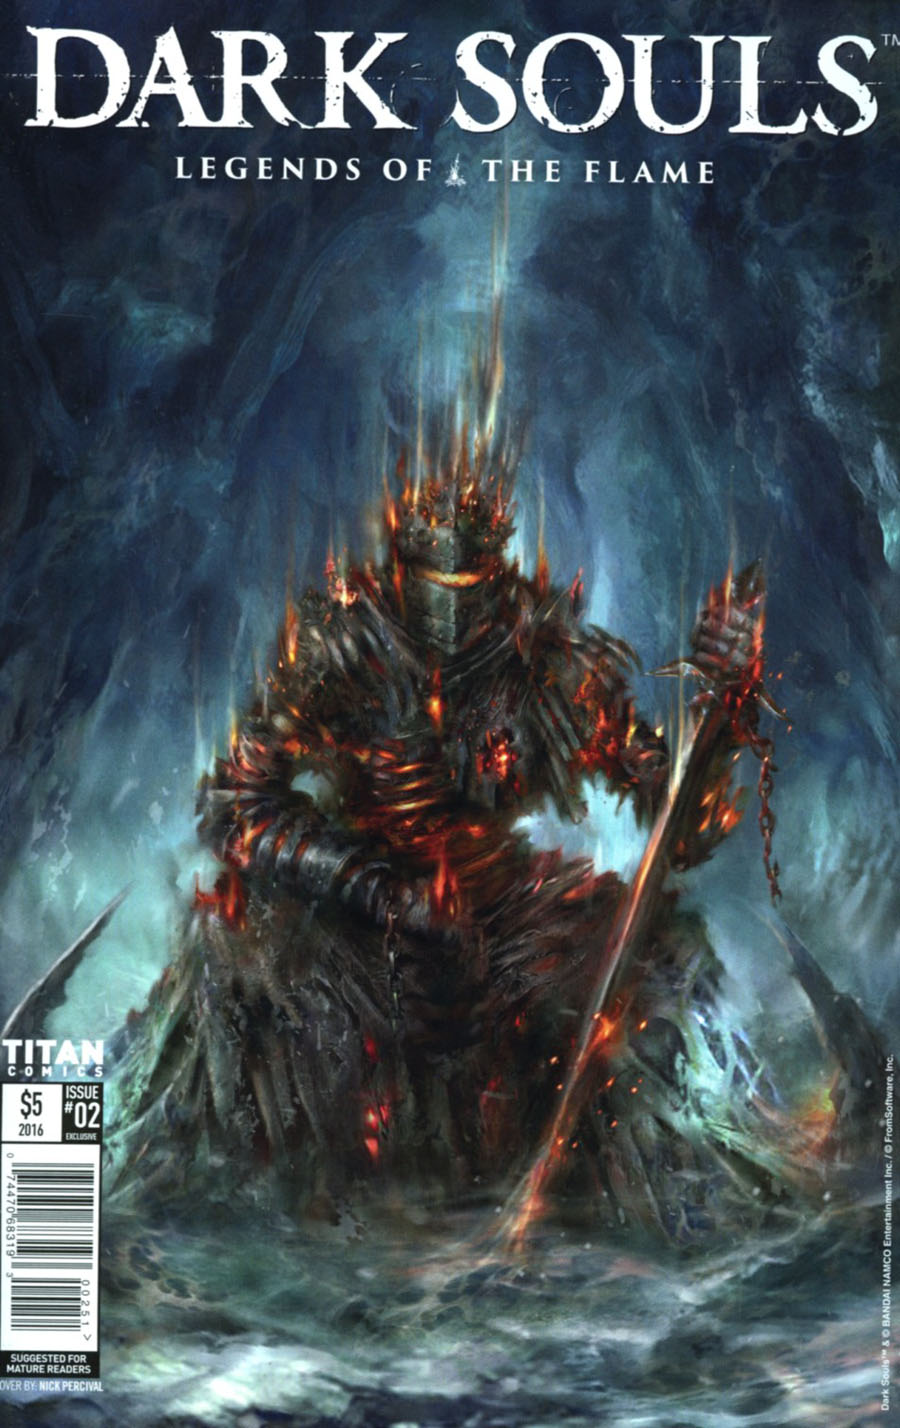 Dark Souls Winters Spite #2 Cover D NYCC Exclusive Nick Percival Variant Cover